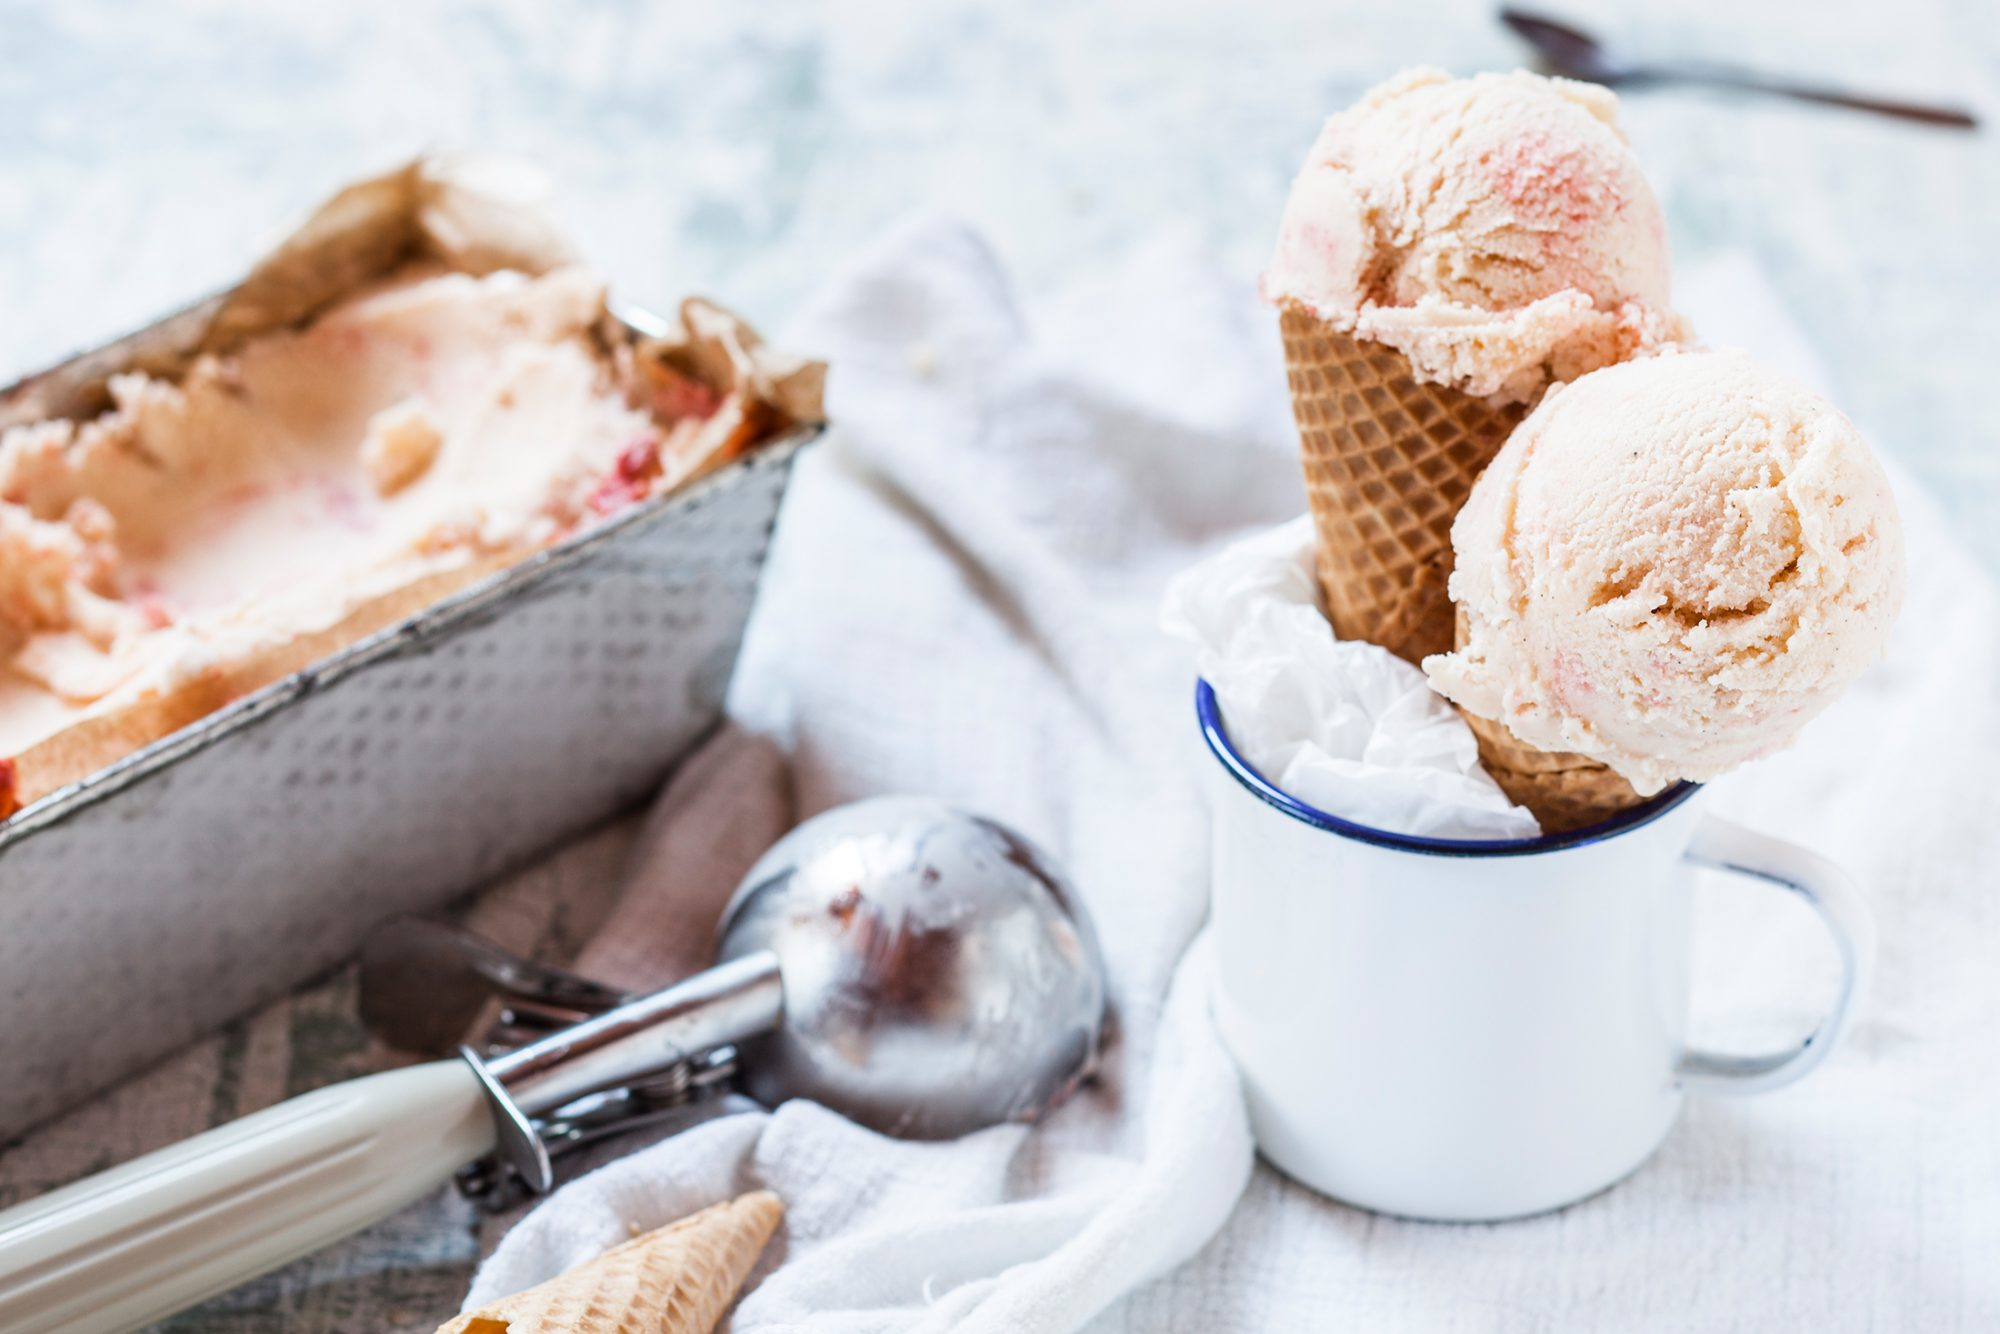 homemade-ice-cream-578189905.jpg